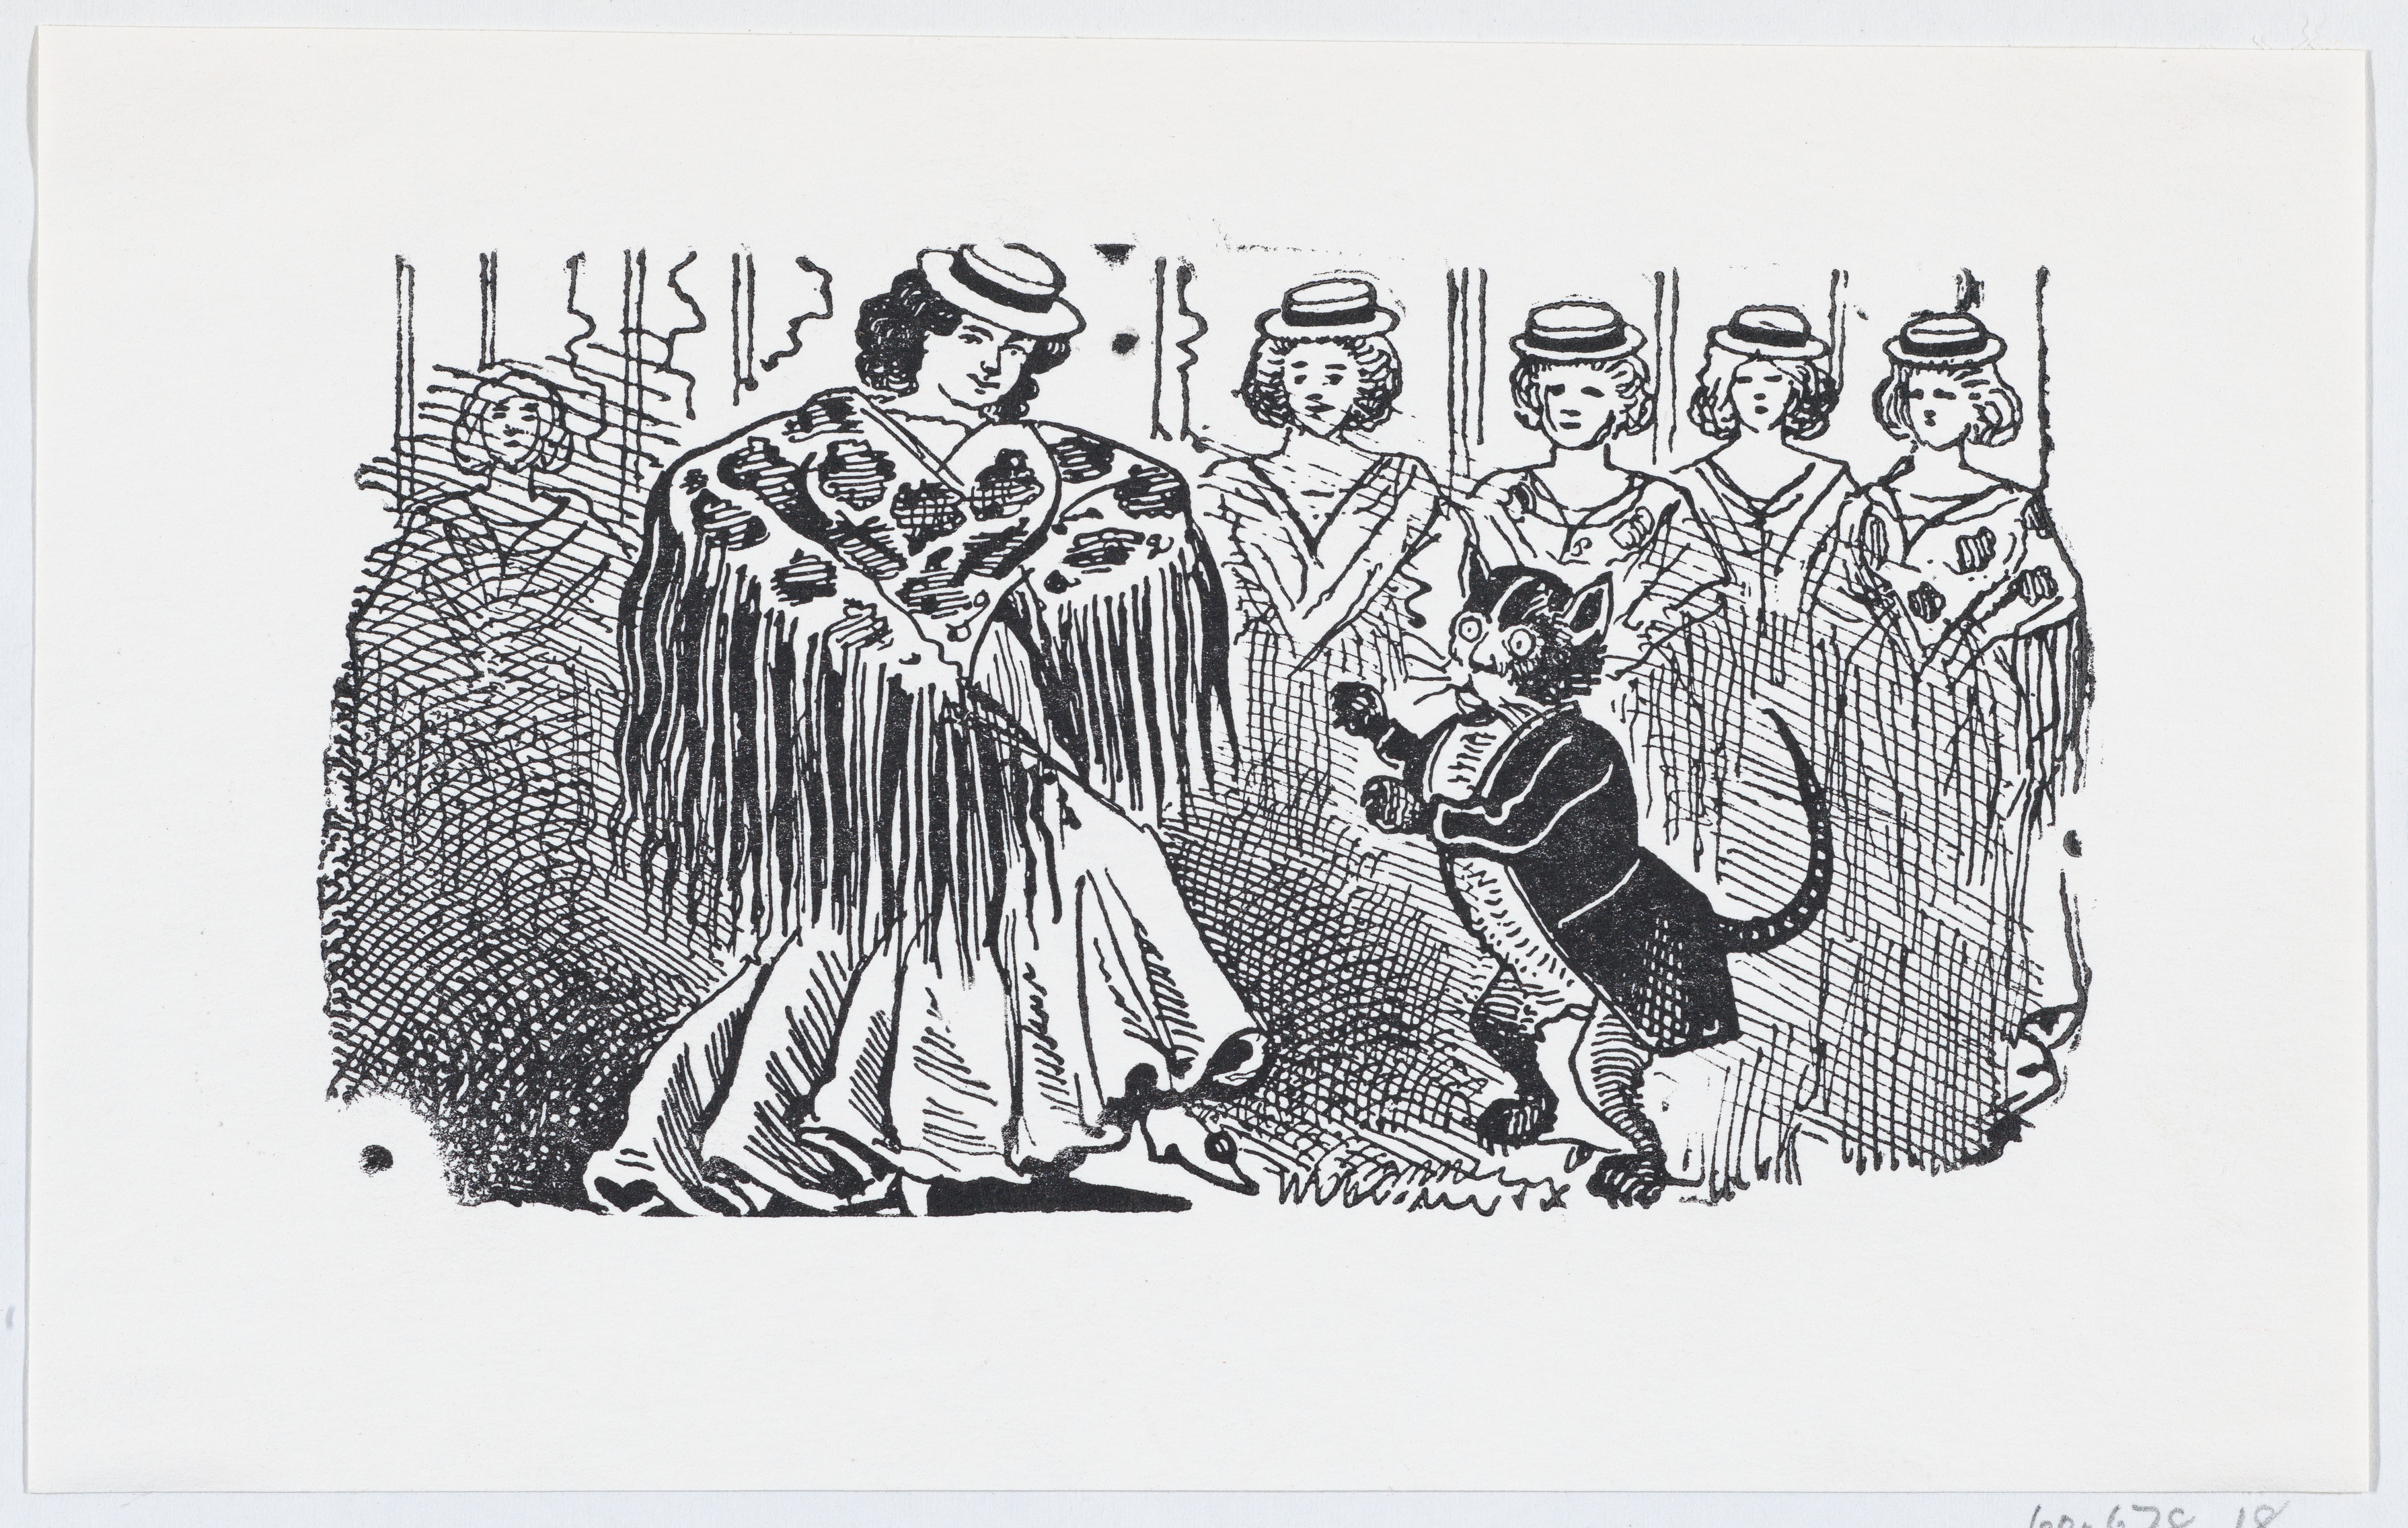 Ink illustration of a woman dancing with a cat in a suit.